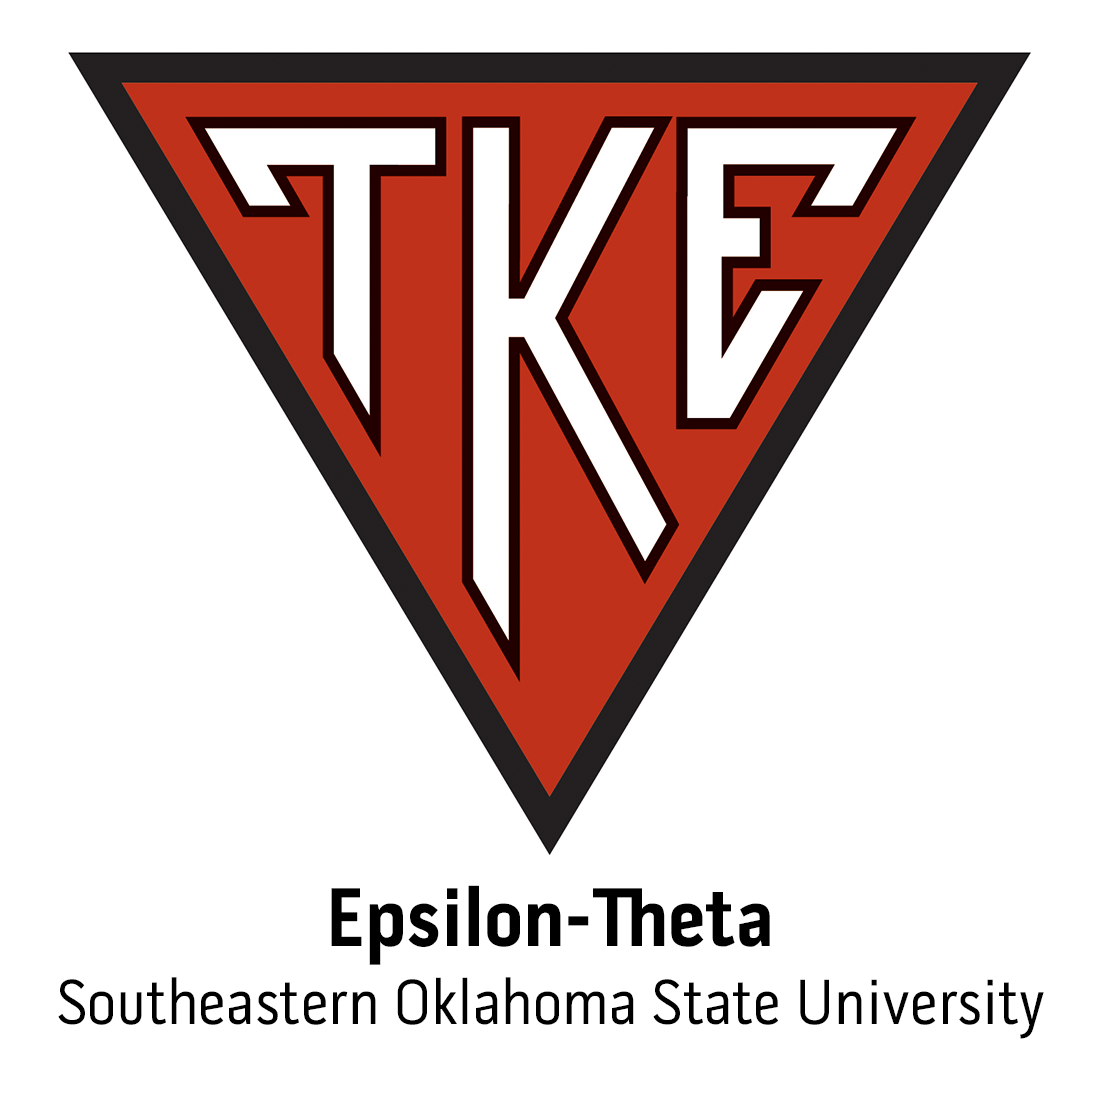 Epsilon-Theta Chapter at Southeastern Oklahoma State University